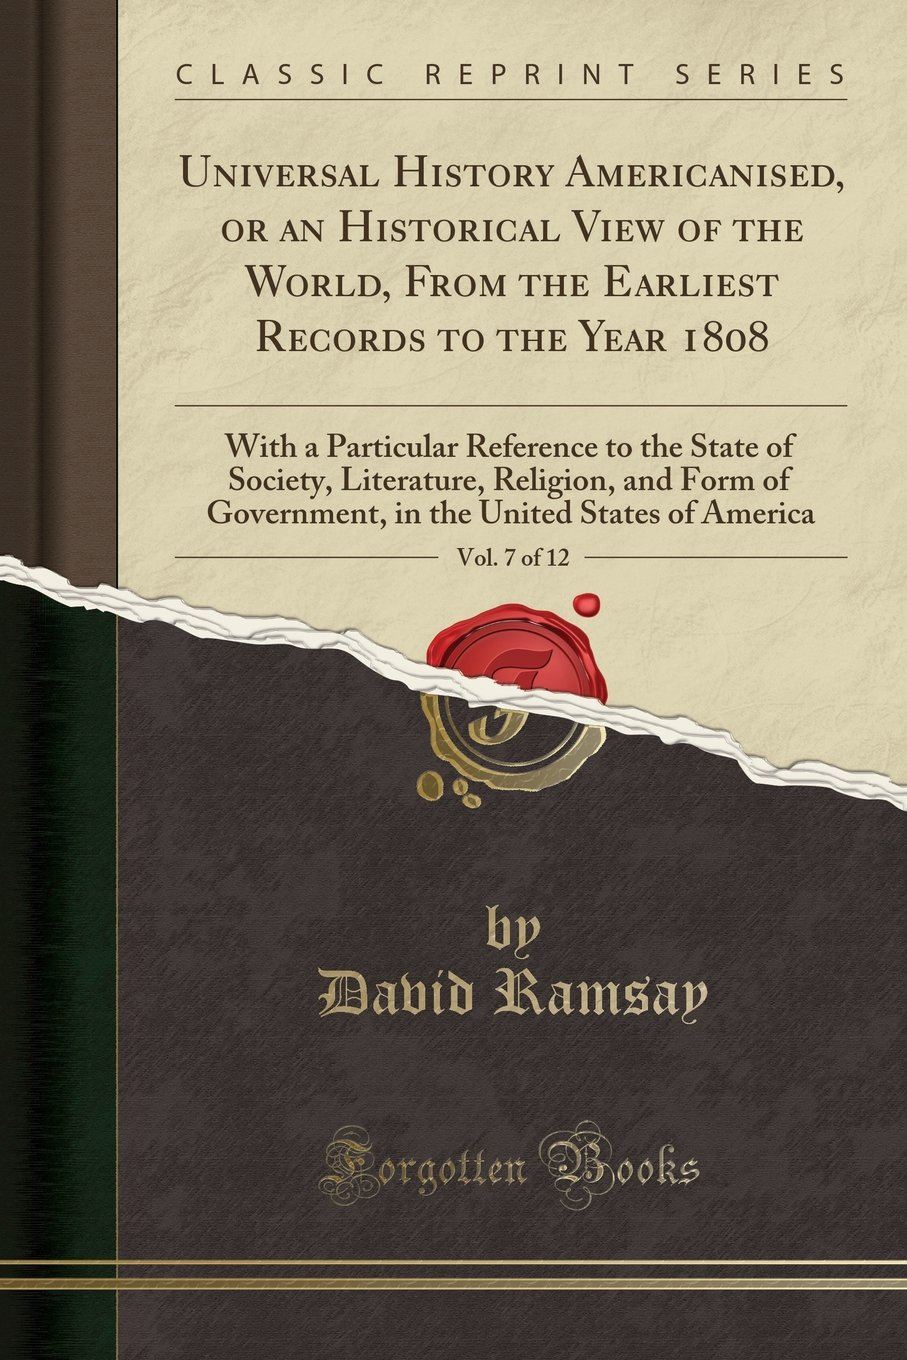 Universal History Americanised, or an Historical View of the World, From the Earliest Records to the Year 1808, Vol. 7 of 12: With a Particular ... of Government, in the United States of Americ pdf